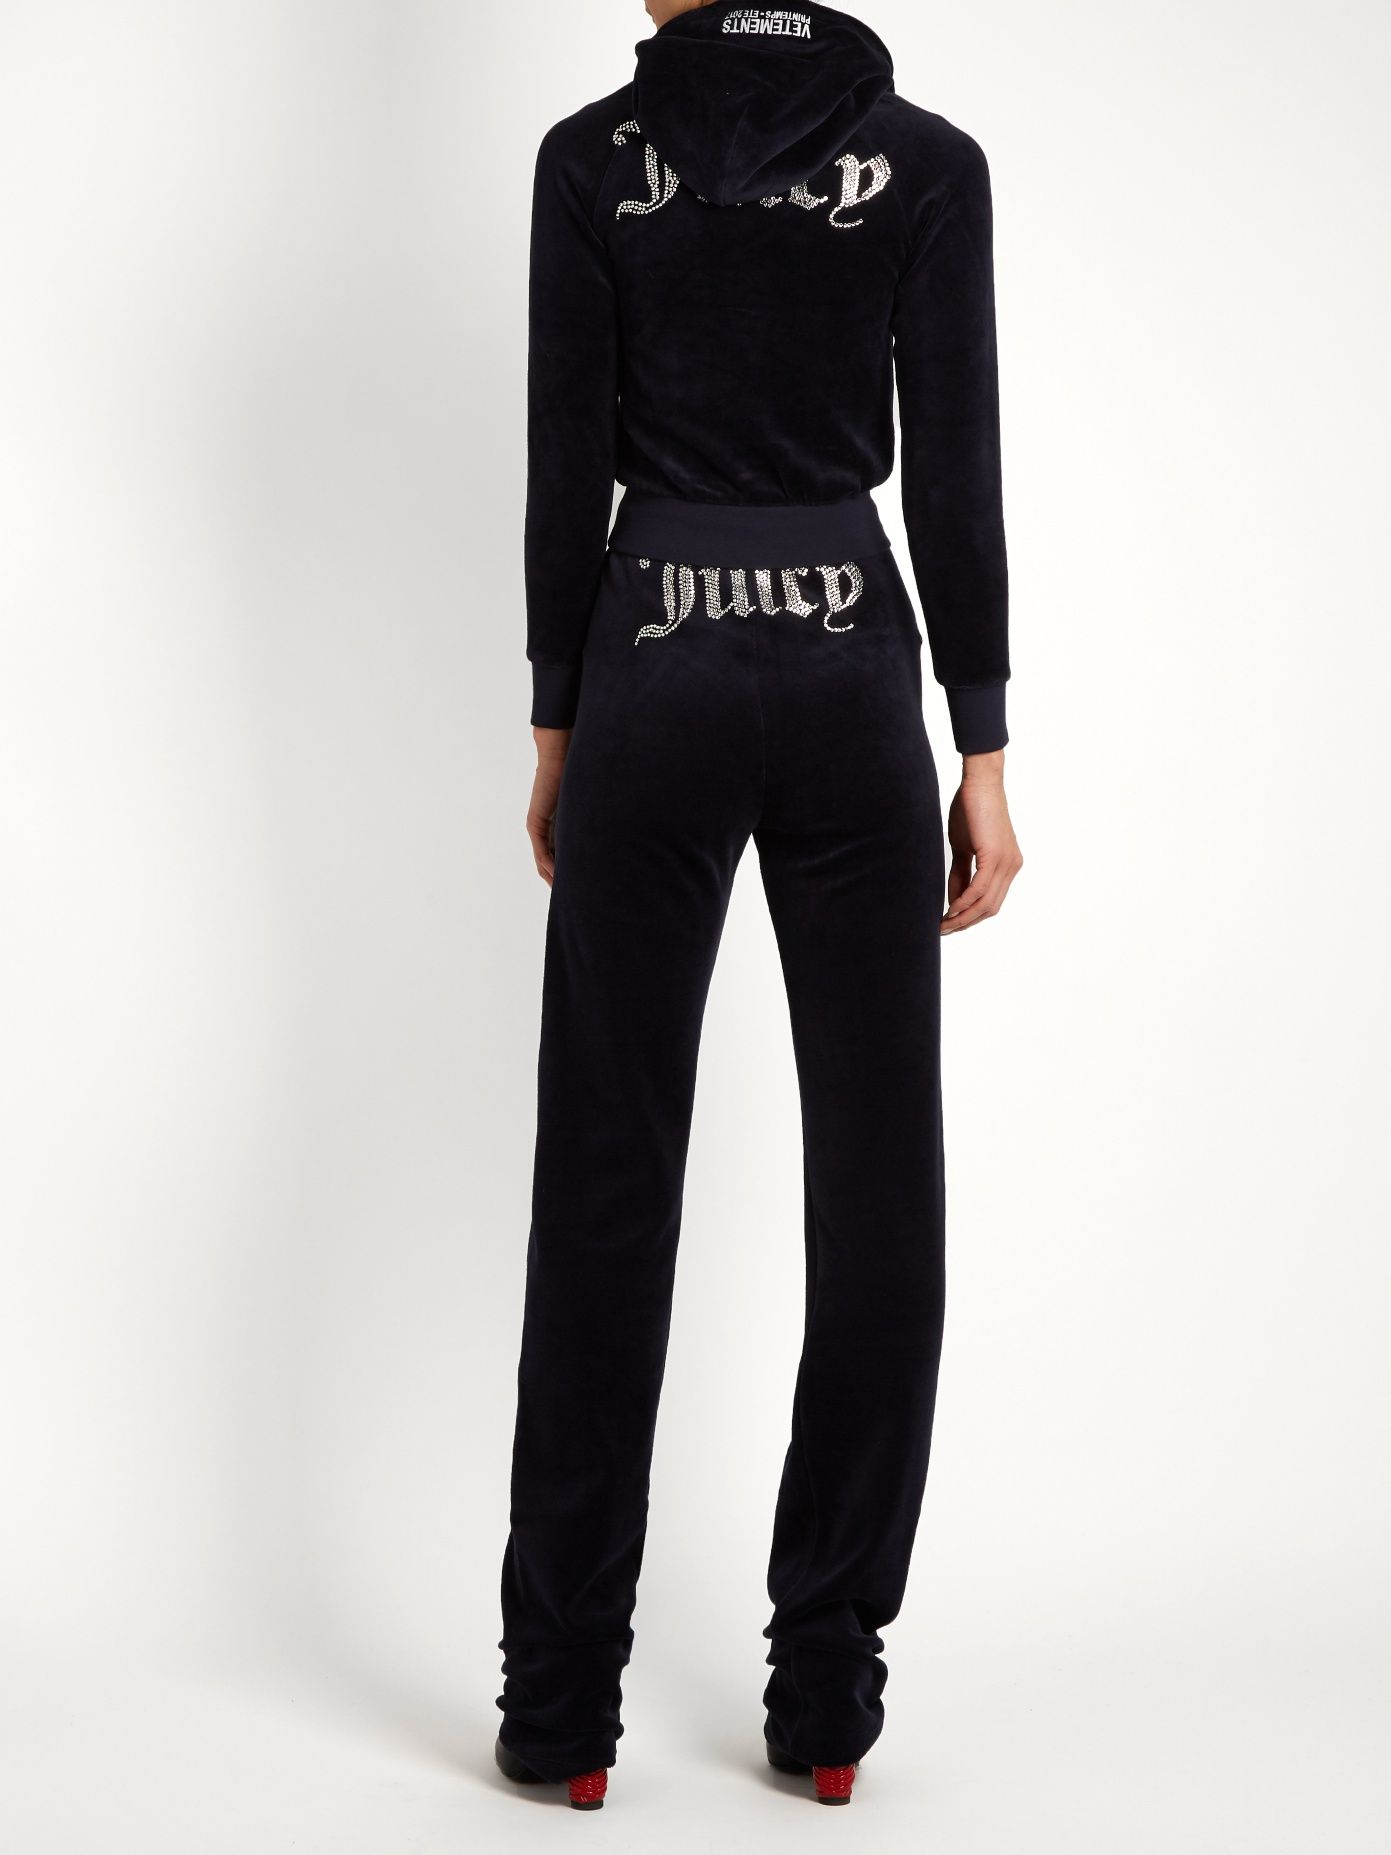 335496d75dd909 Click here to buy Vetements X Juicy Couture velour track pants at  MATCHESFASHION.COM